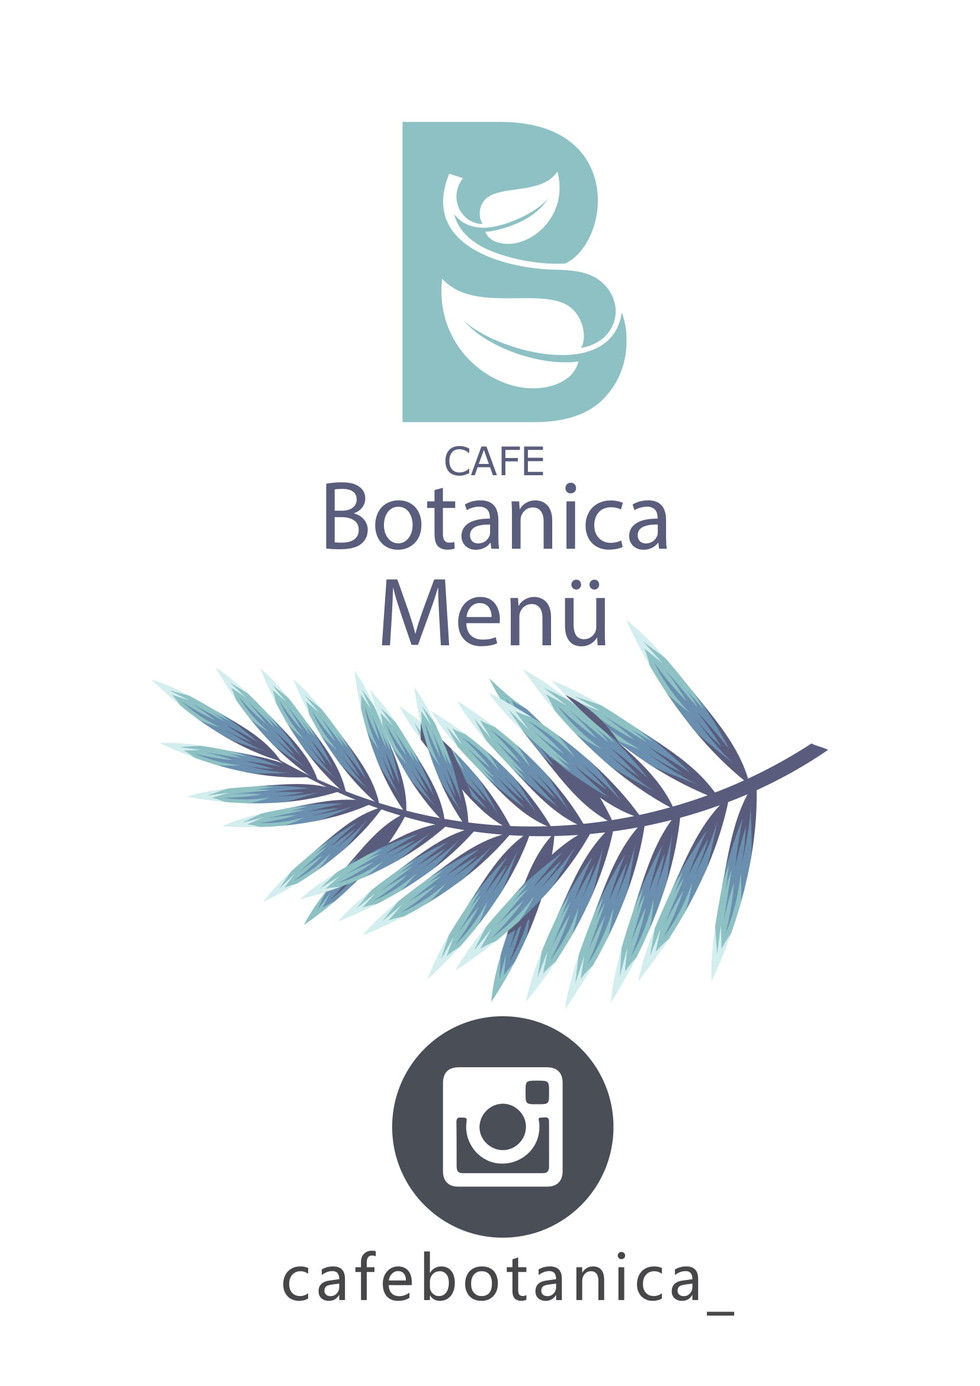 CAFE BOTANICA MENU